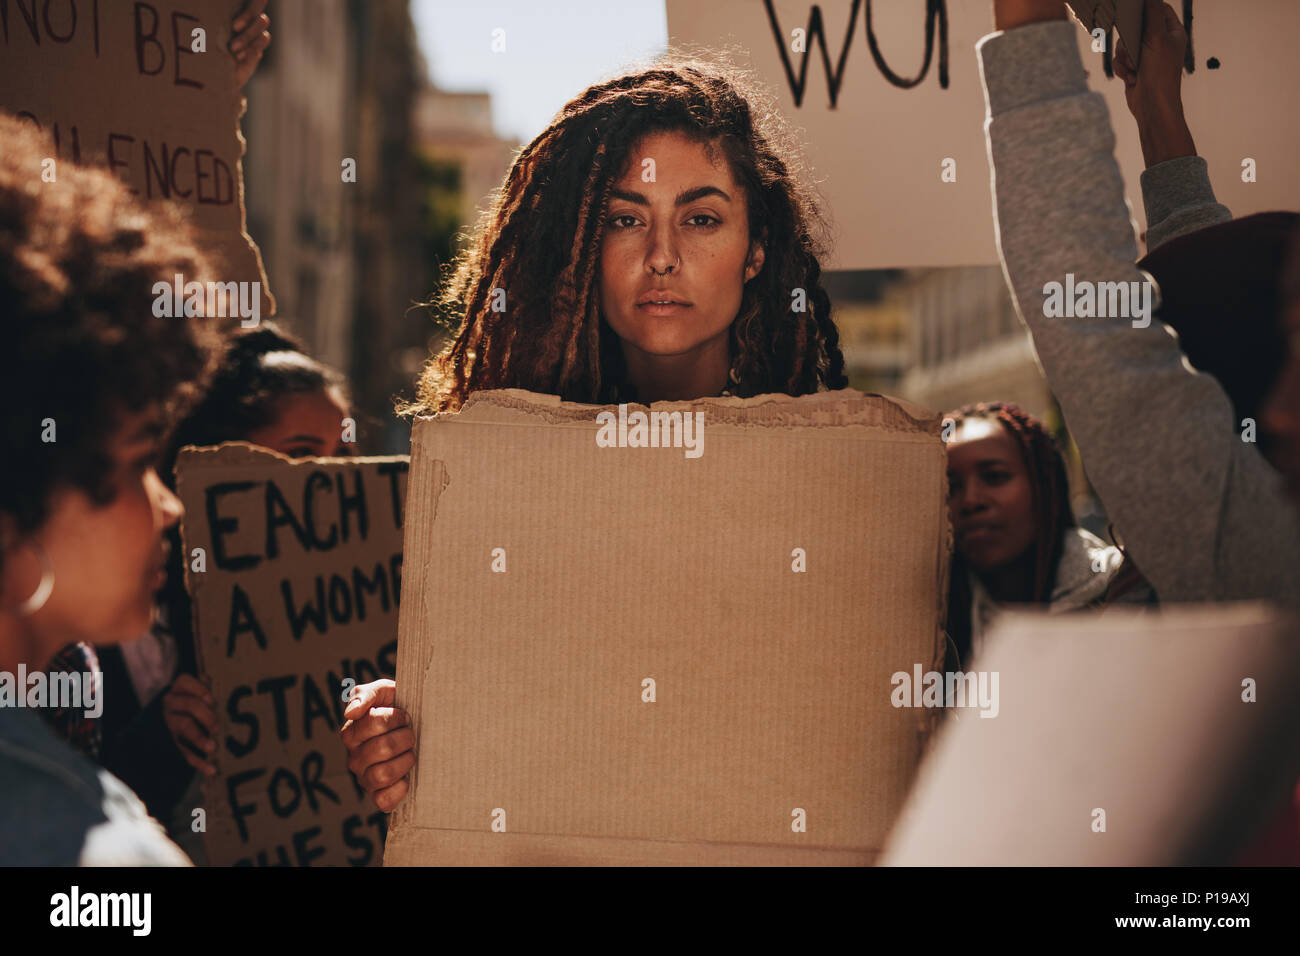 Serious woman holding a blank placard during a protest outdoors. Group of female demonstrators on road with banners. - Stock Image